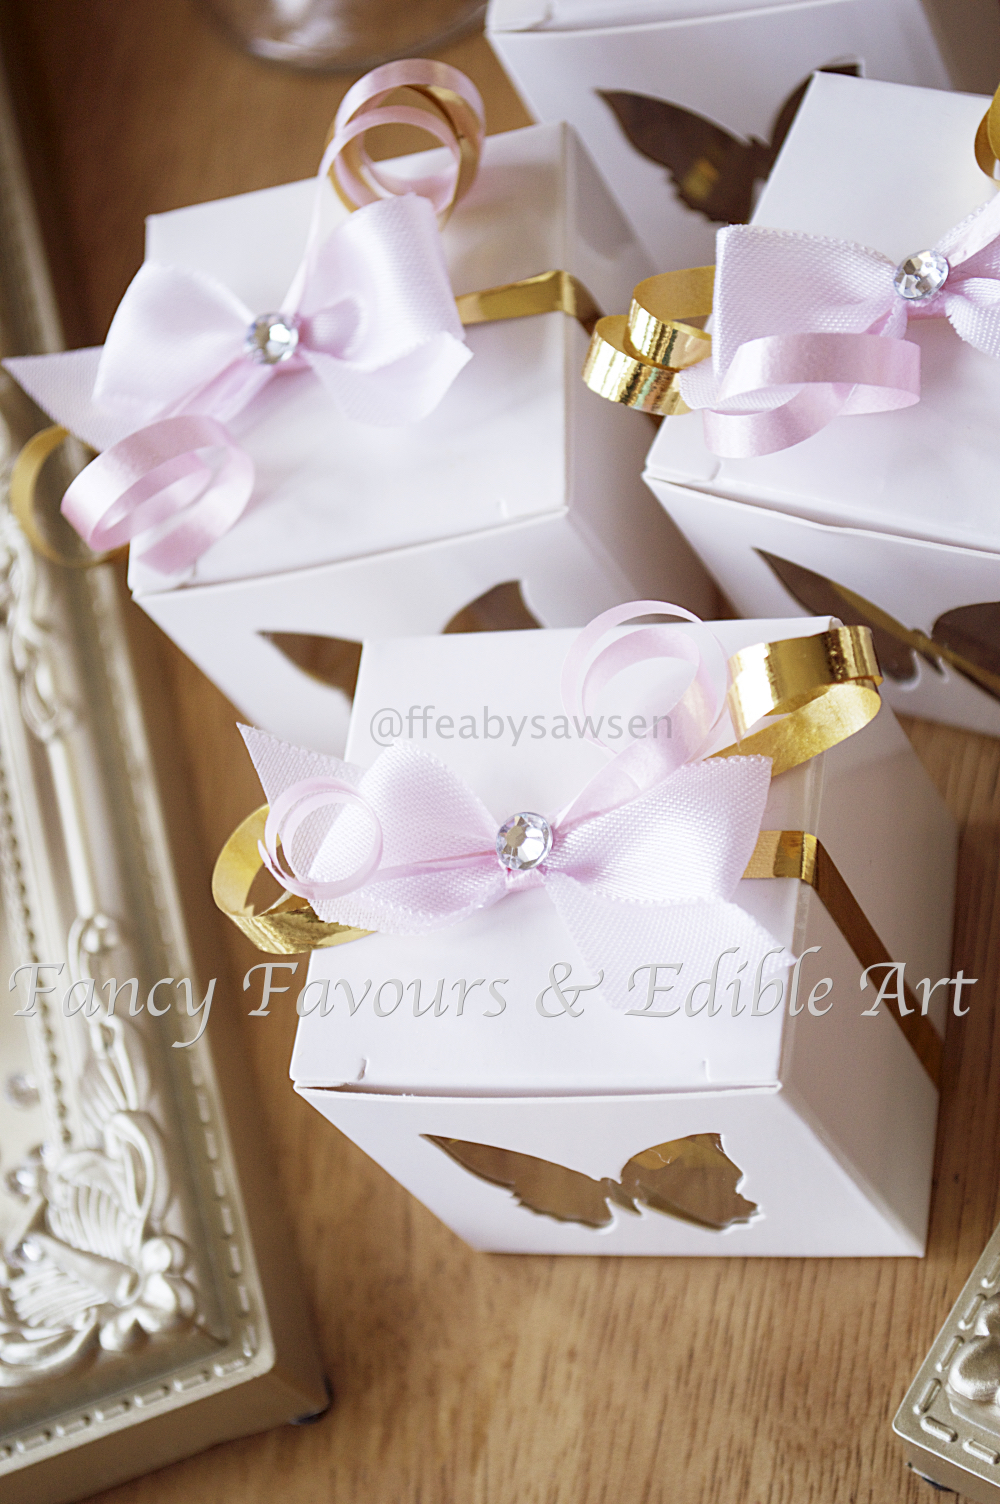 pink-gold-white-butterfly-favour-boxes | Fancy Favours & Edible Art